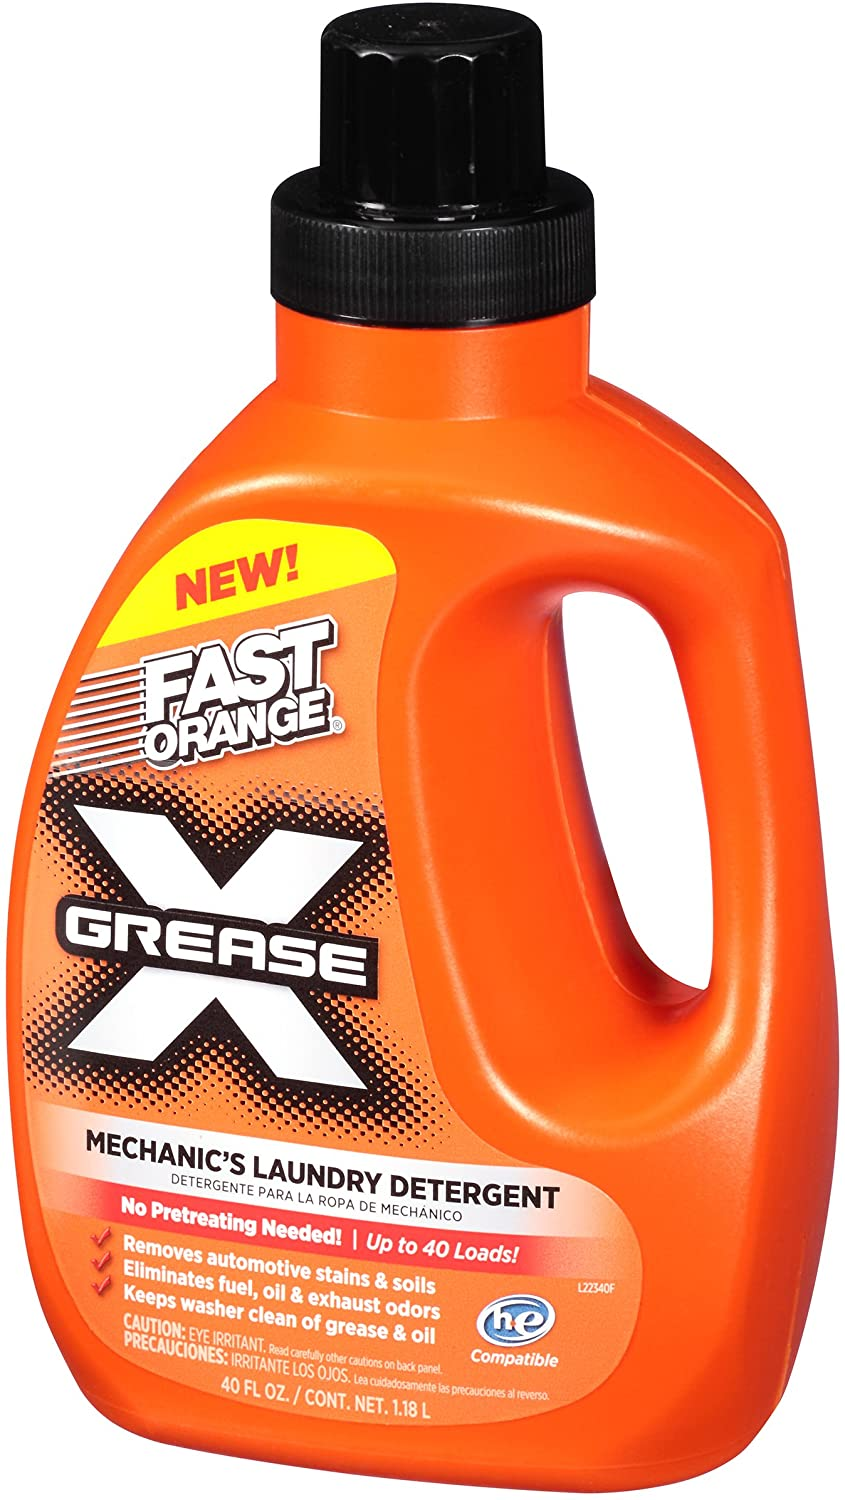 Permatex 22340 Fast Orange Grease X Mechanic S Laundry Detergent